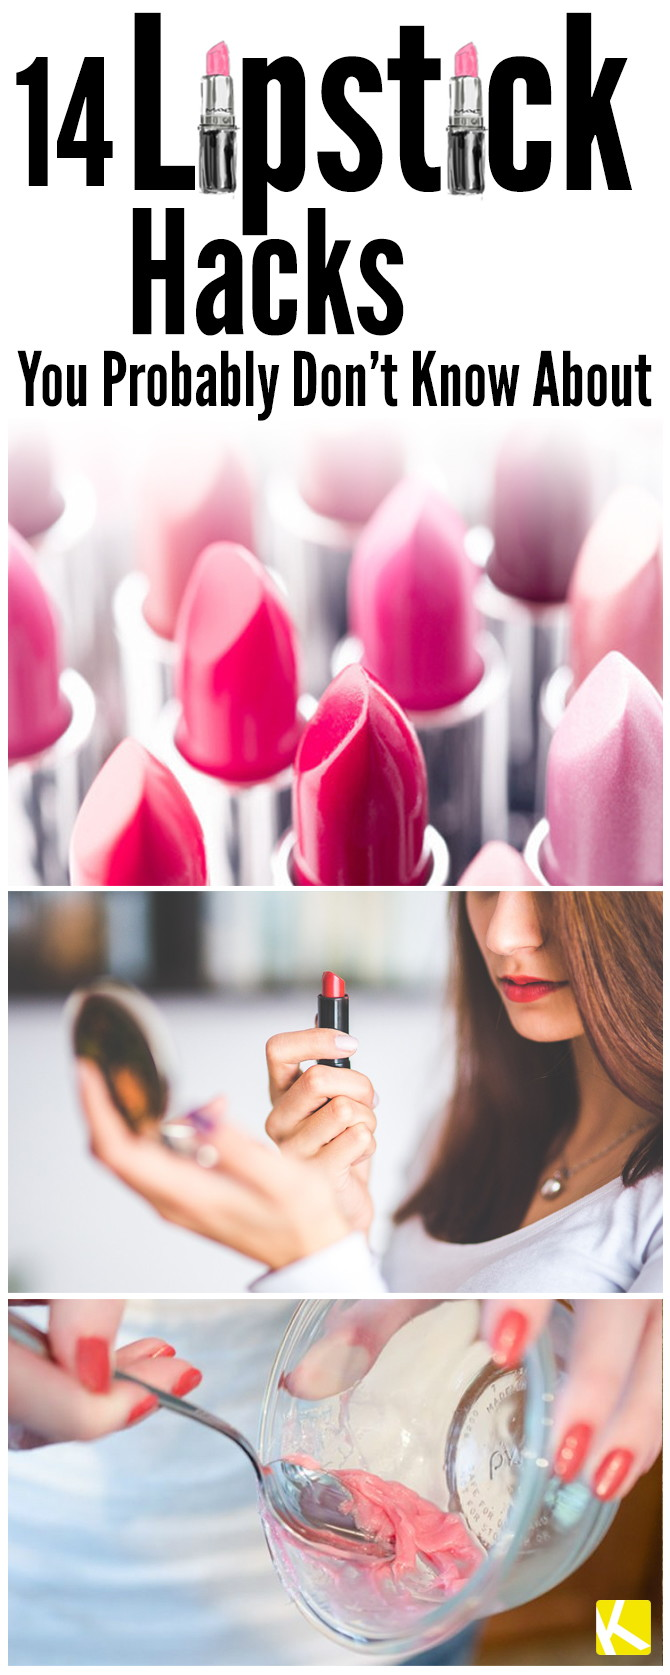 14 Fabulous Lipstick Hacks You Probably Didn't Know About